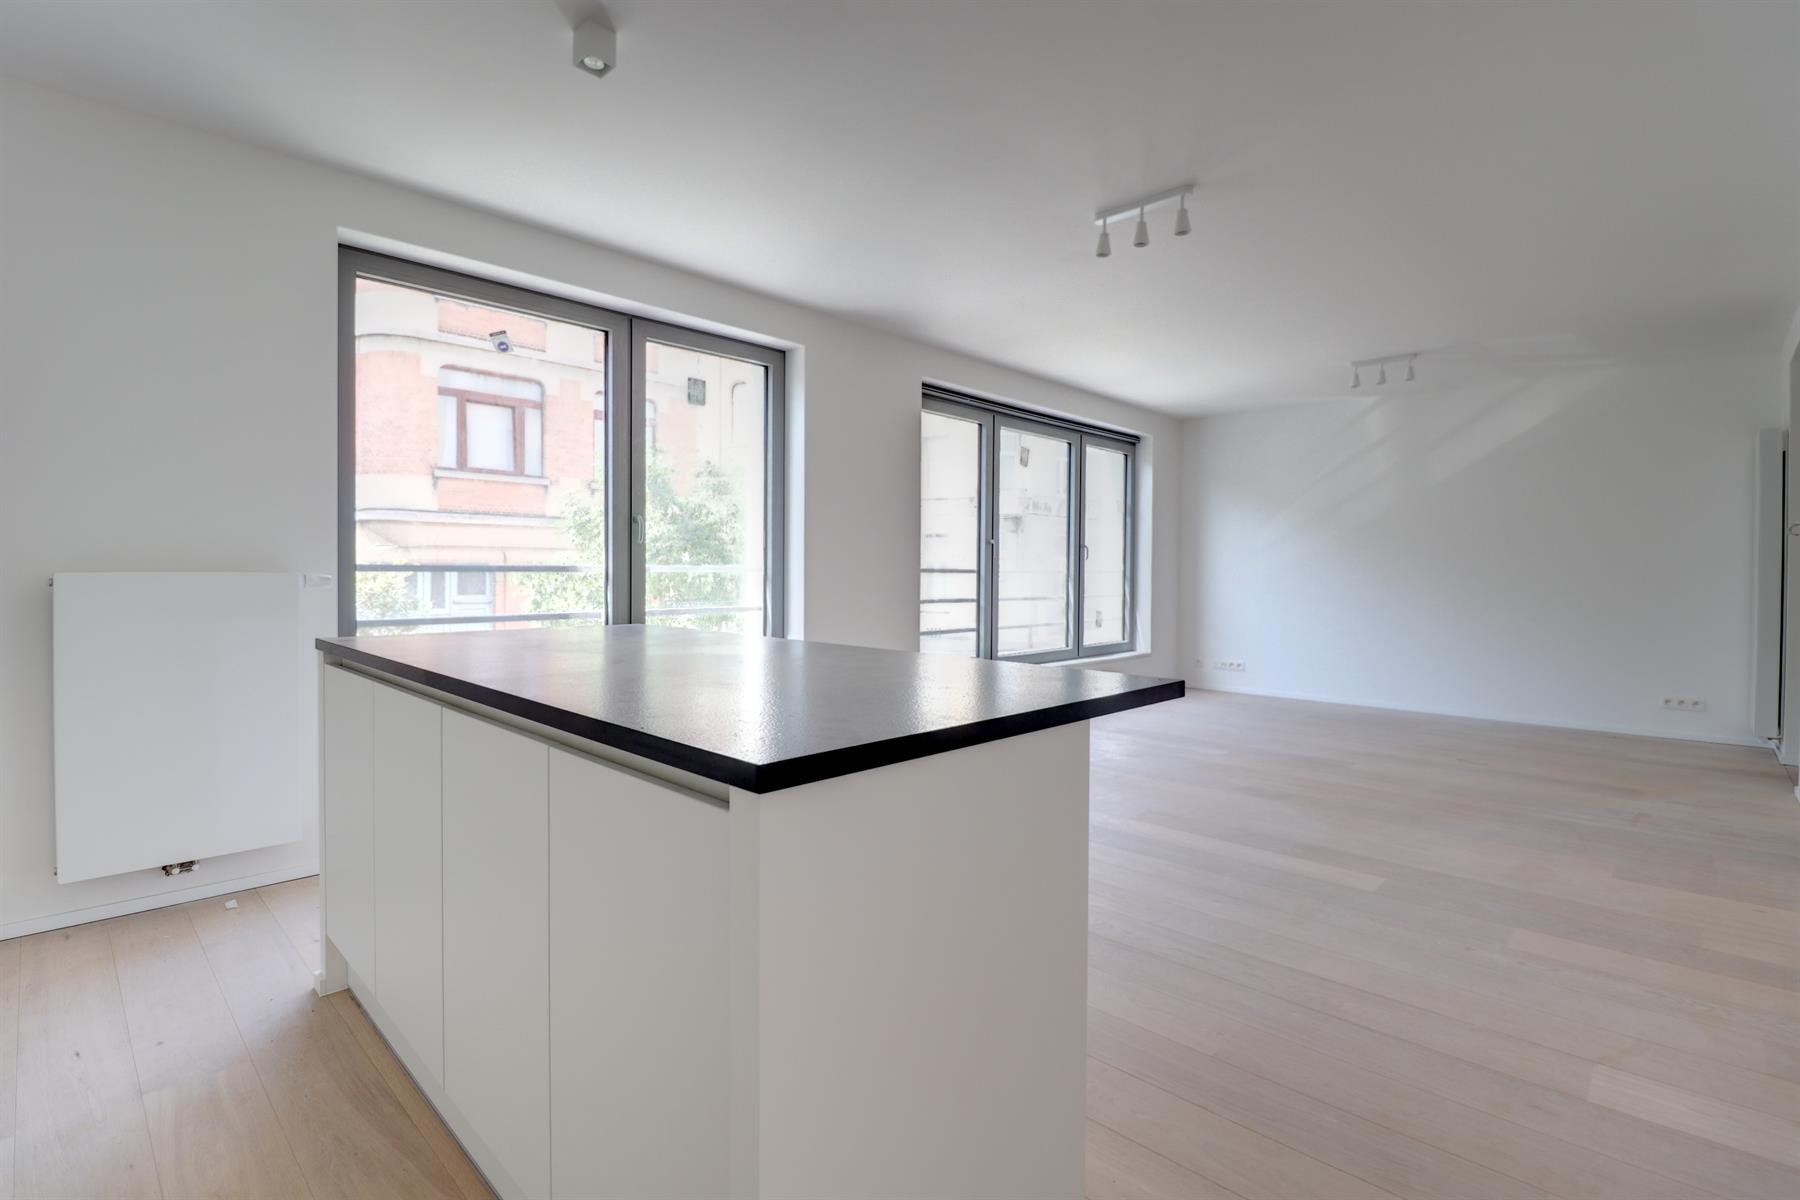 Appartement - Uccle - #4089881-2